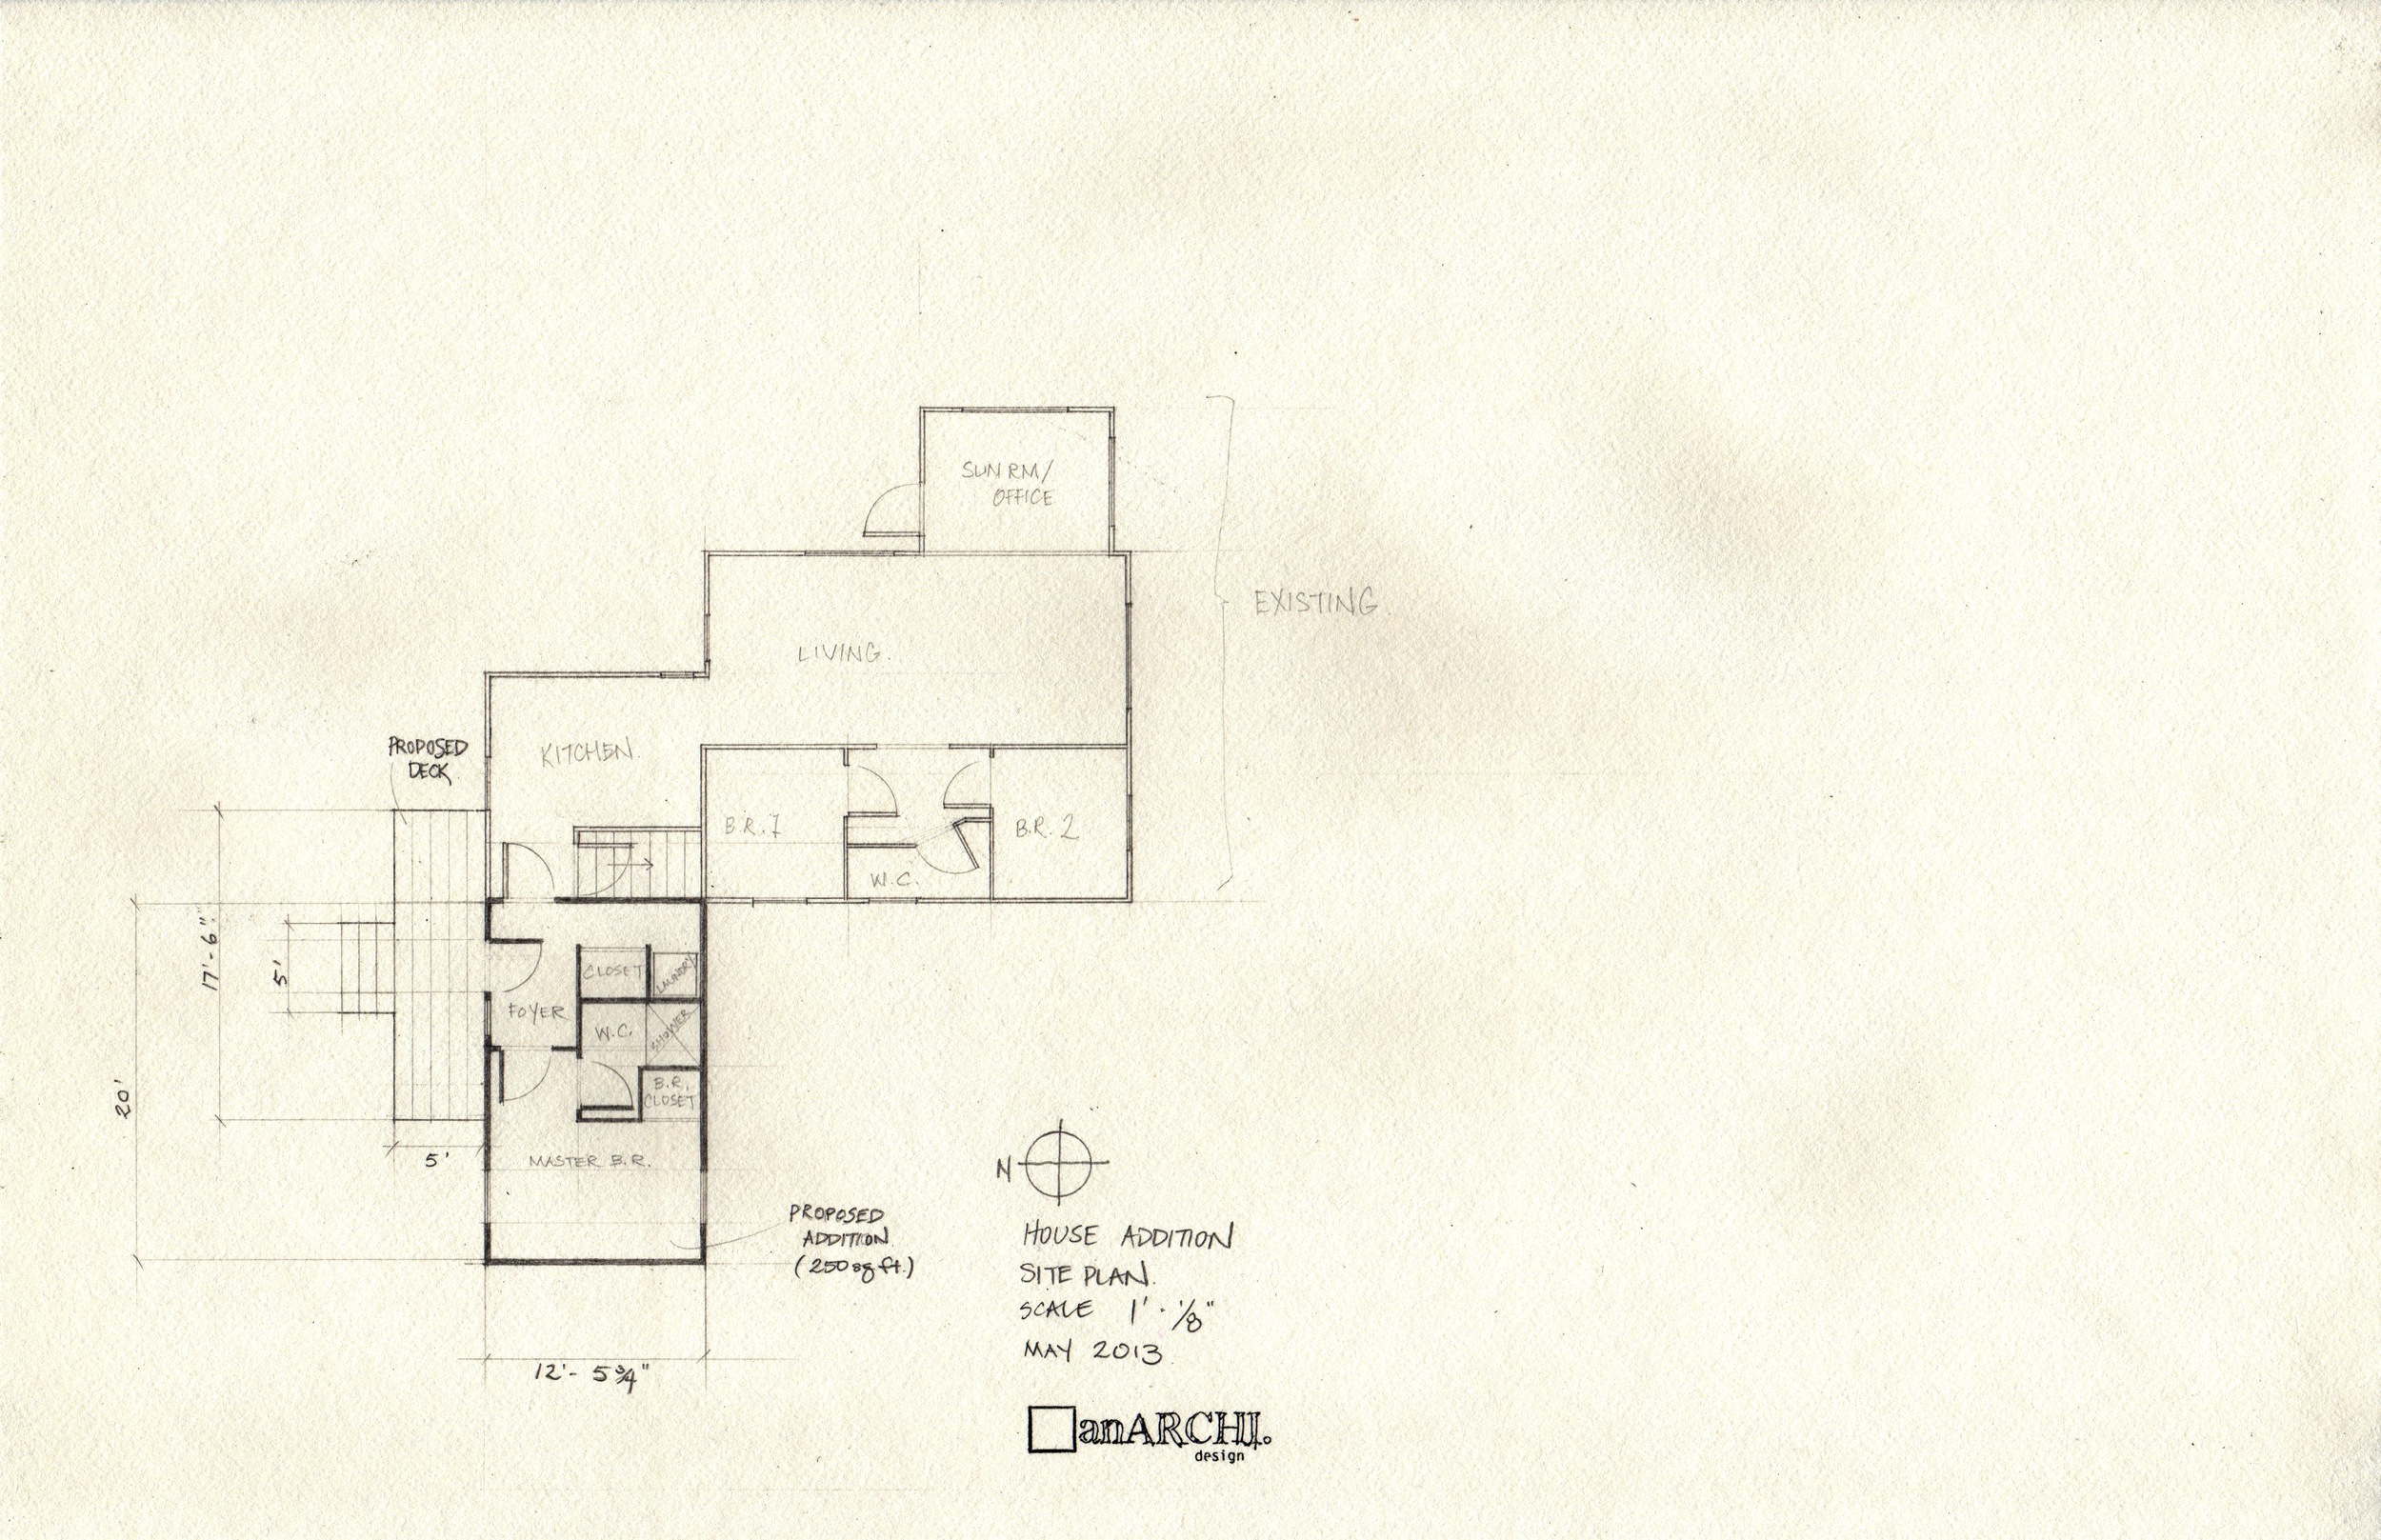 Plan of existing house with addition